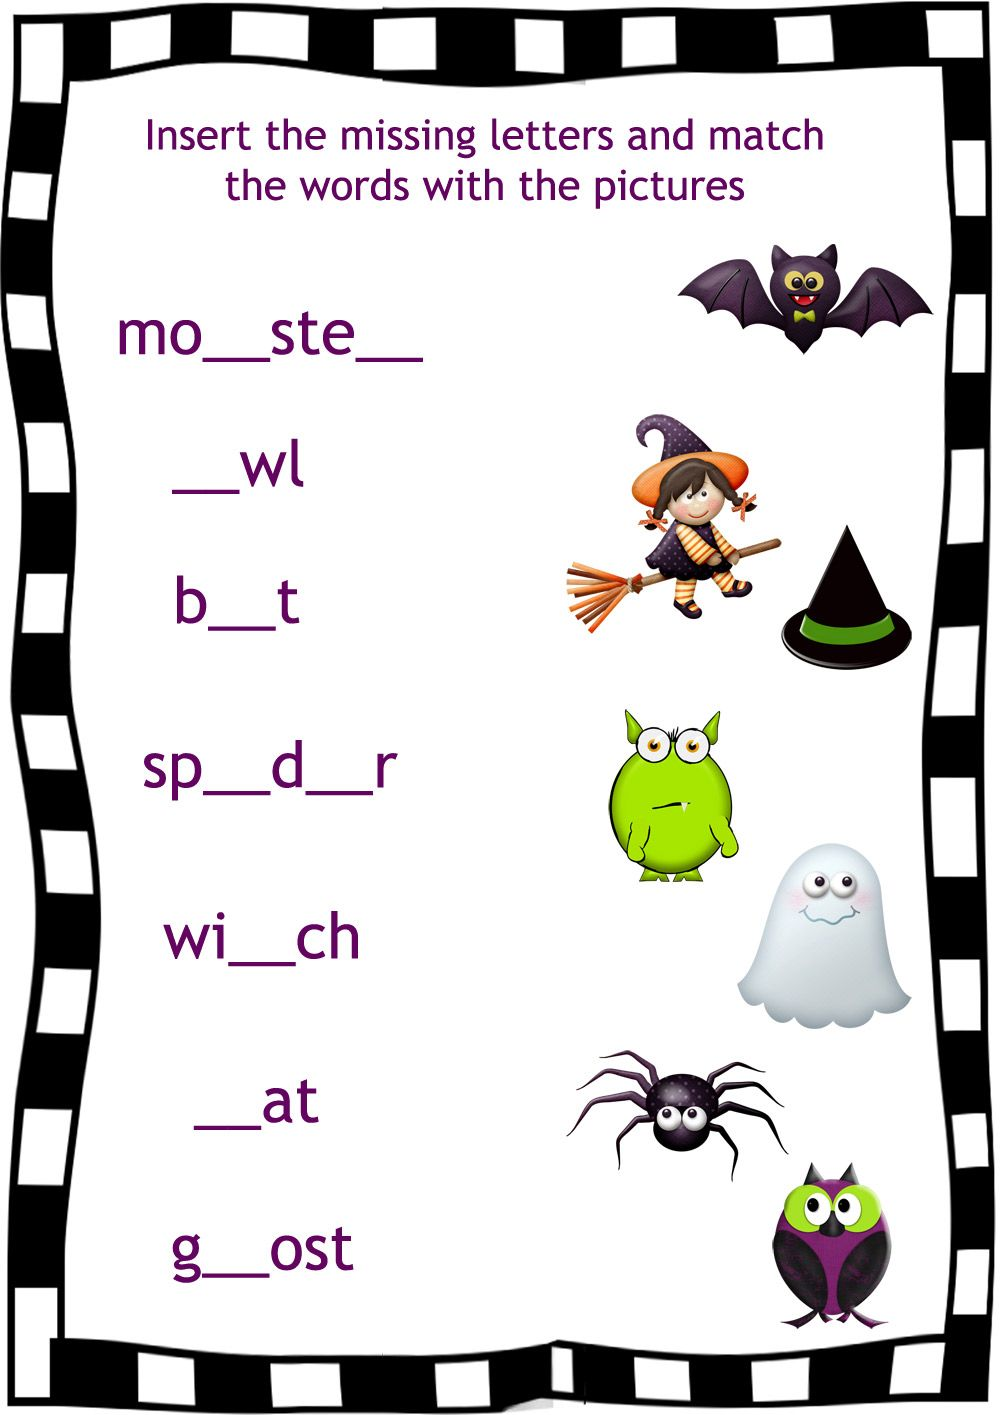 worksheet Halloween Worksheets For Kindergarten thomas the train halloween worksheets for kids this scary night song kids